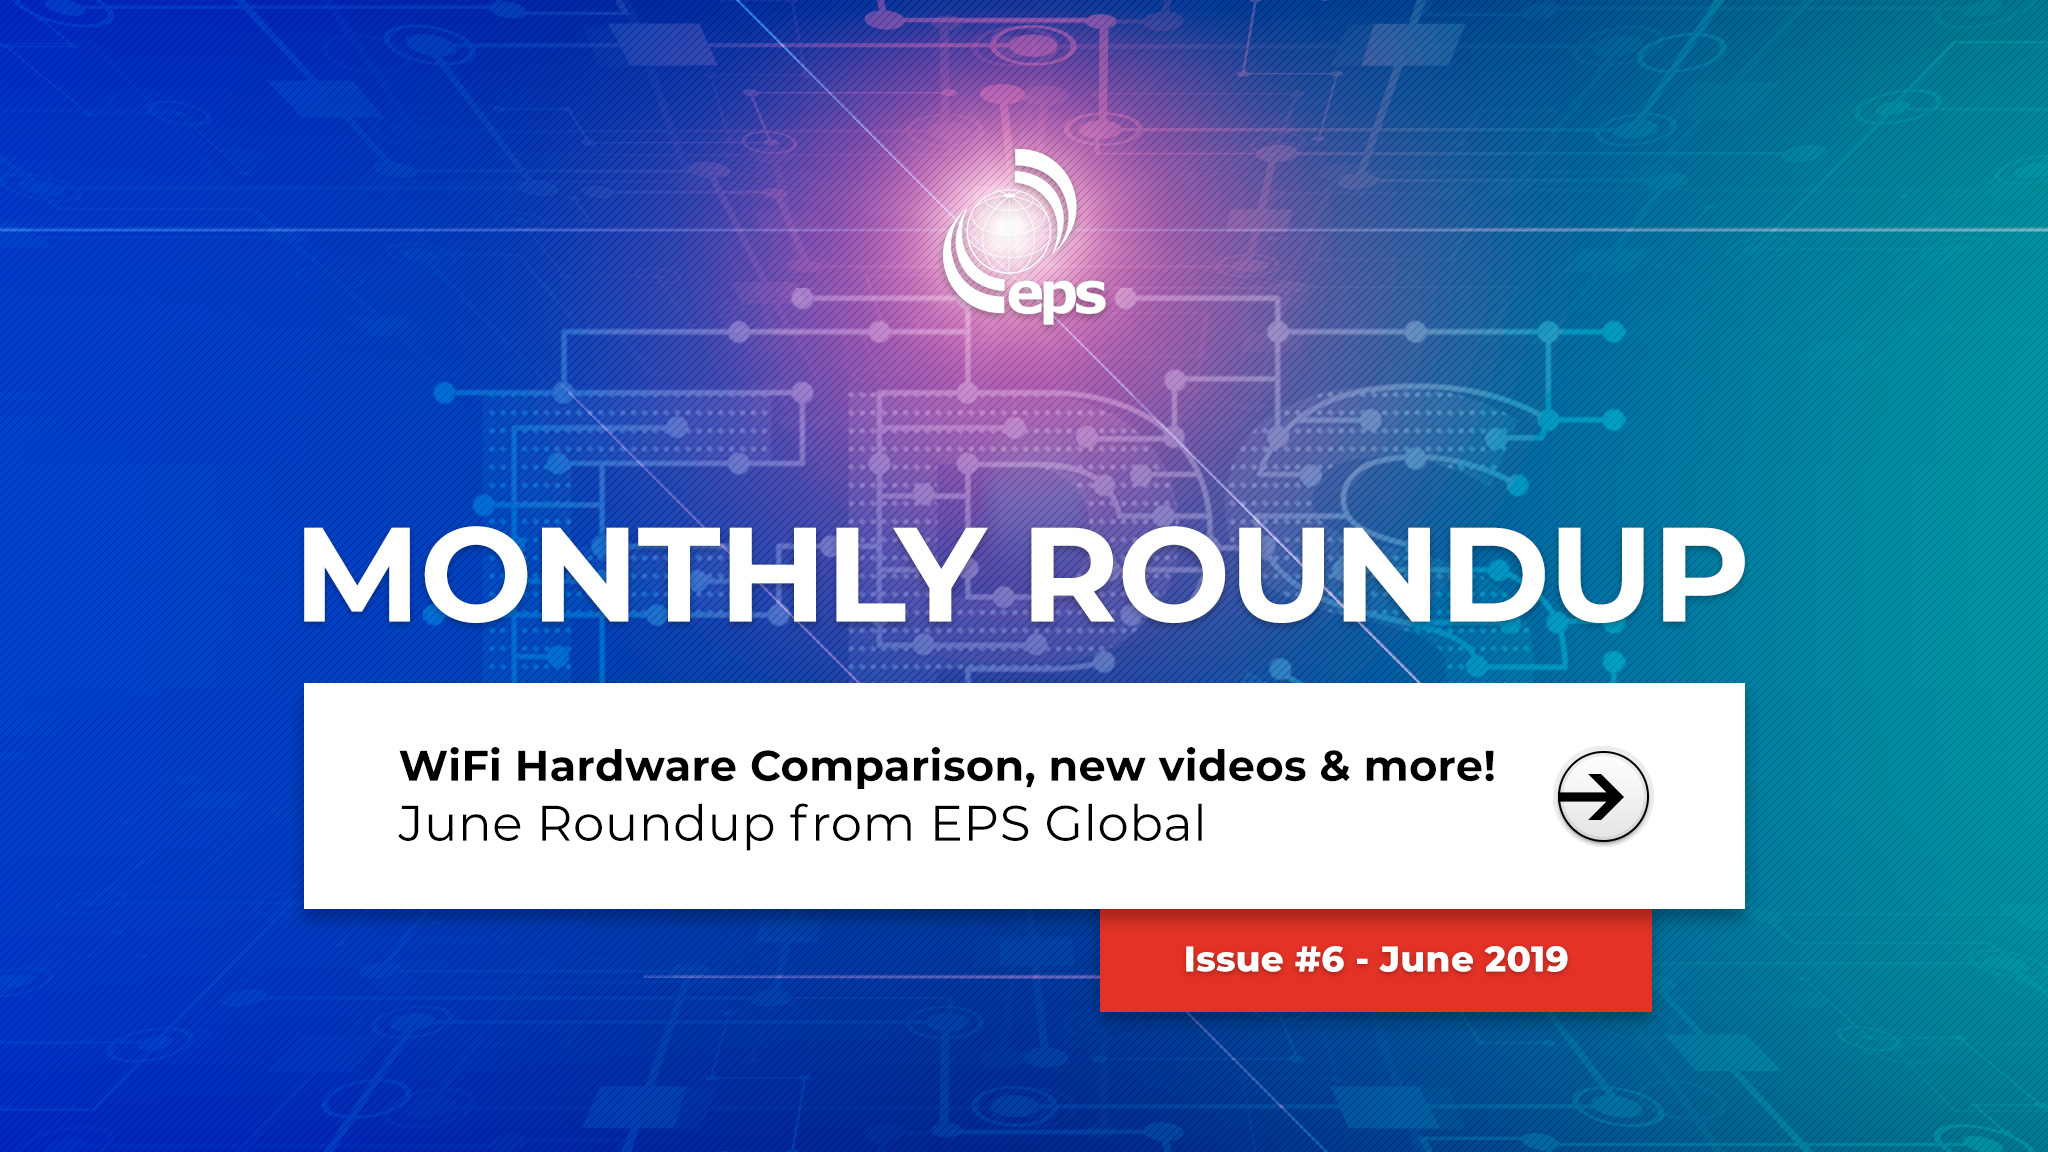 WiFi Hardware Comparison, new videos & more! - June Tech Roundup from EPS Global